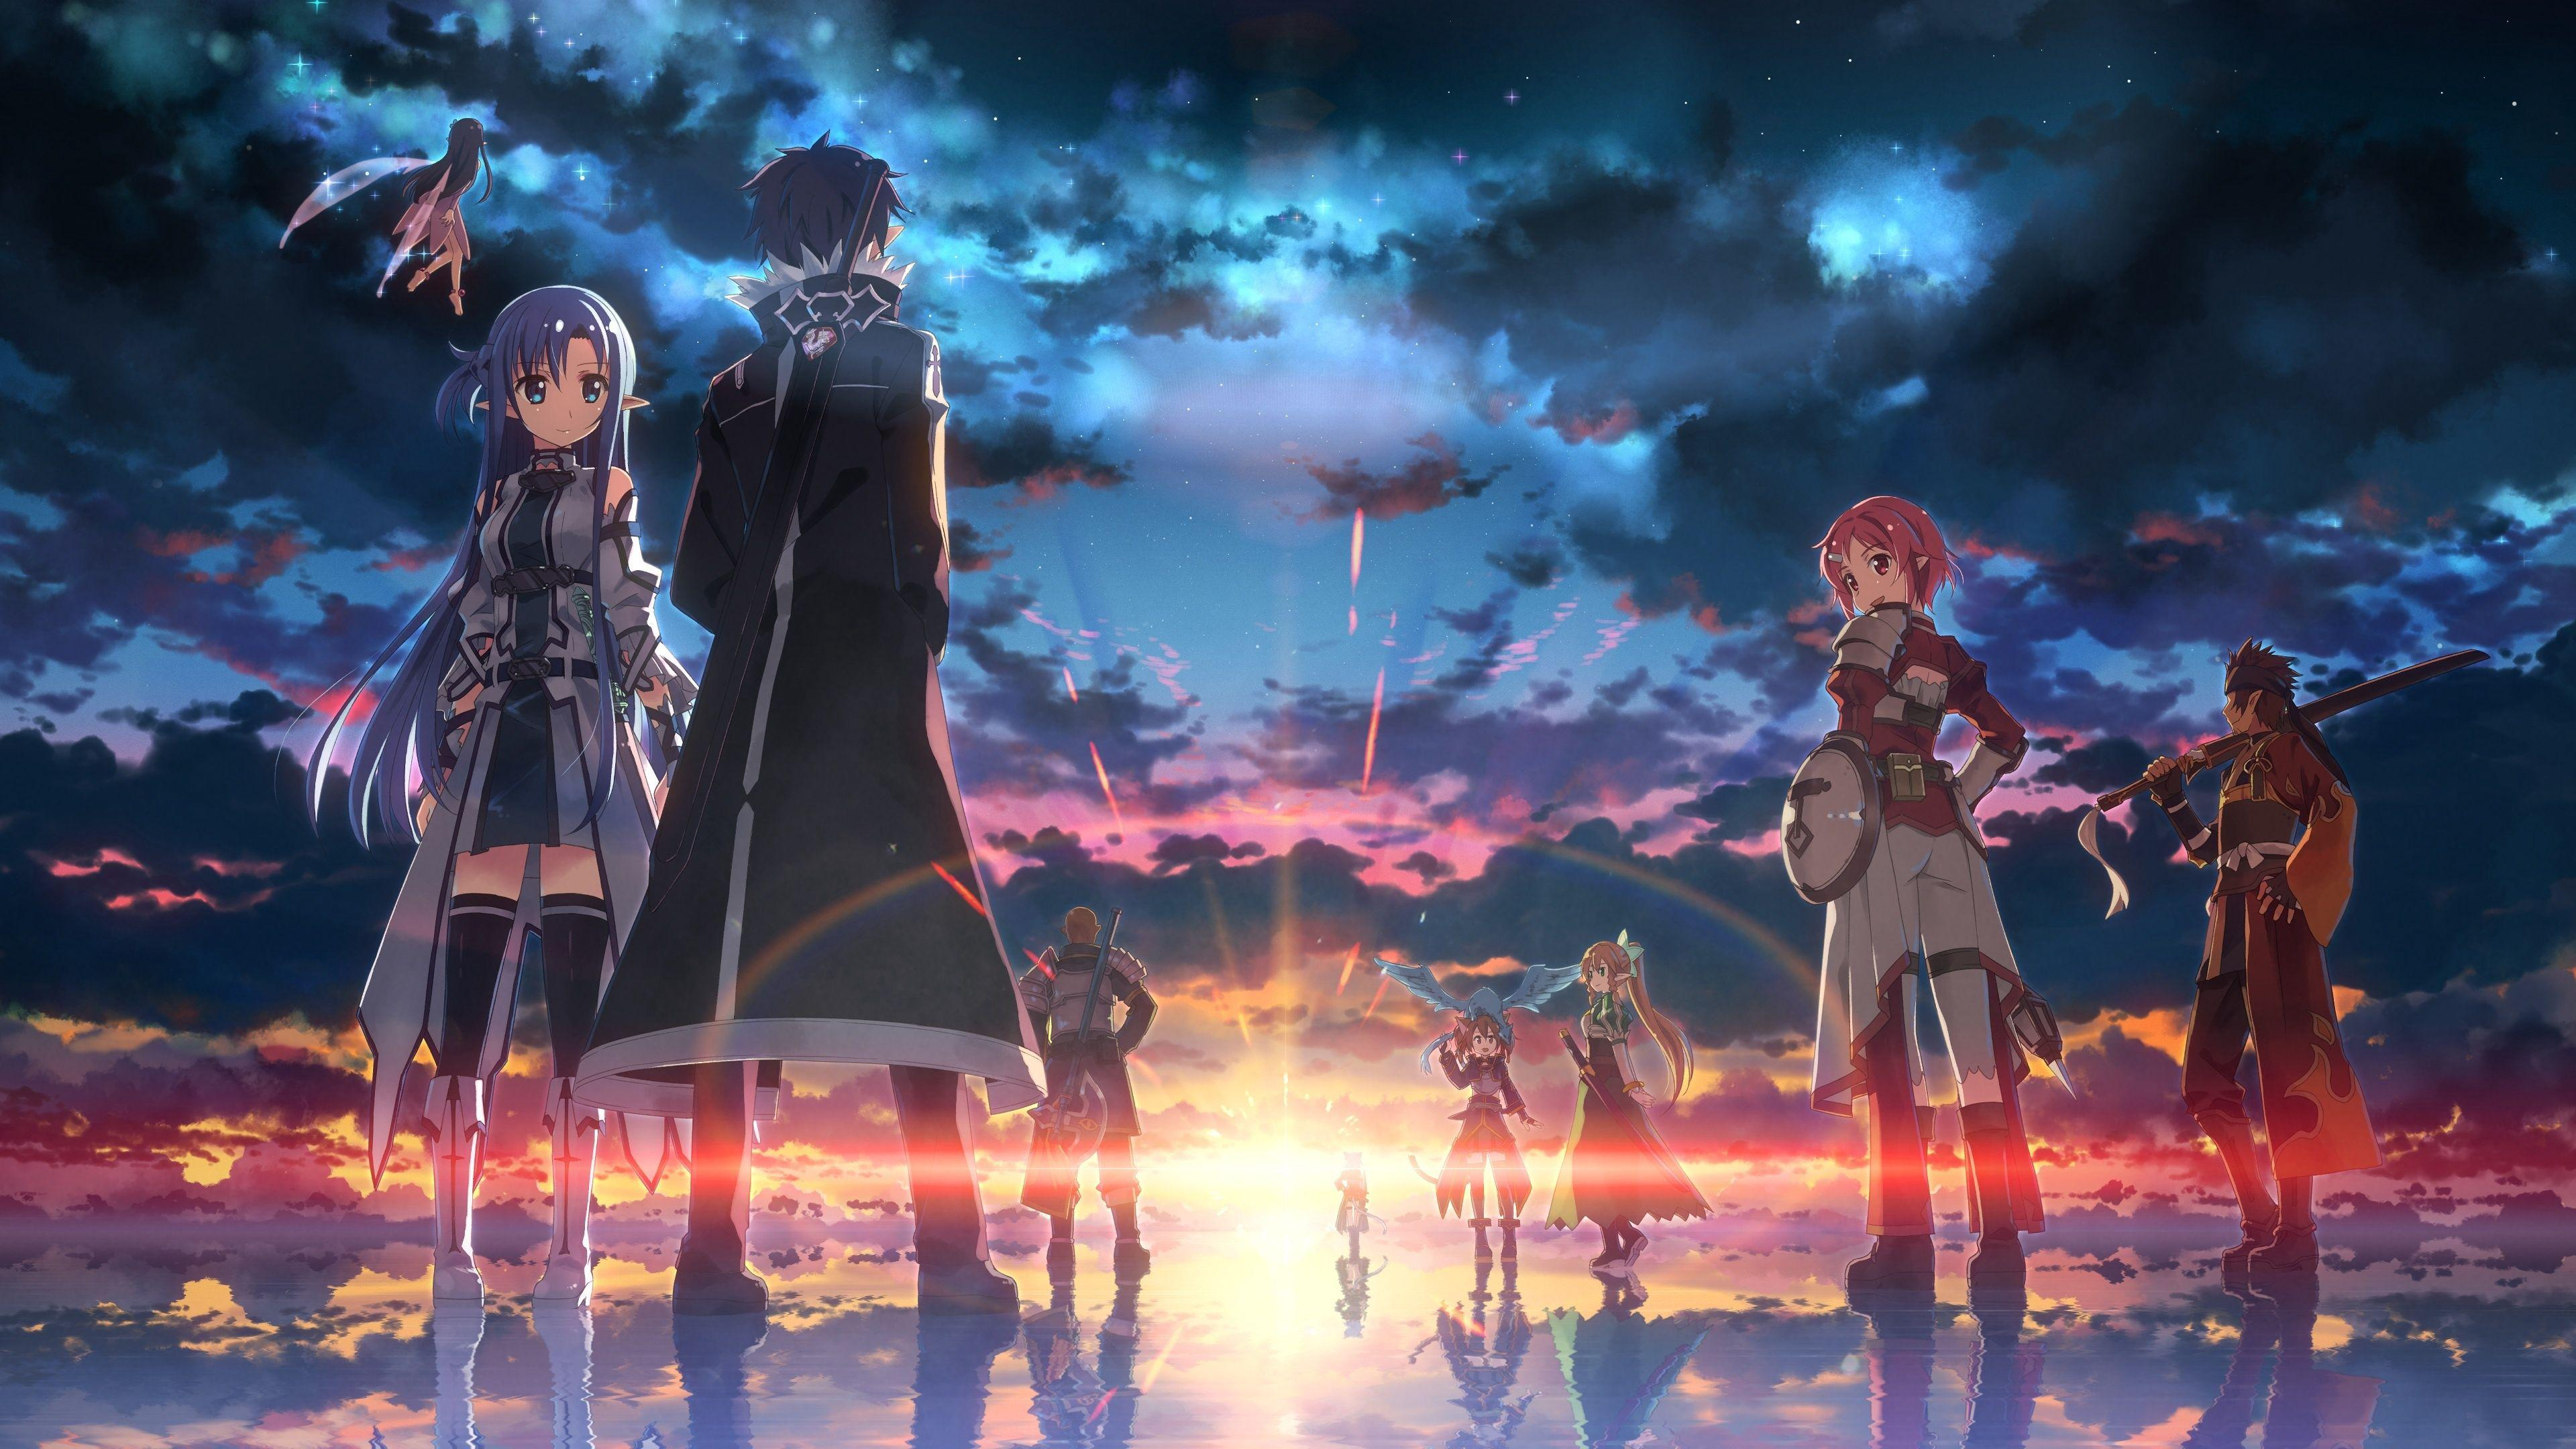 Sword Art Online Hd Wallpapers Wallpaper Cave